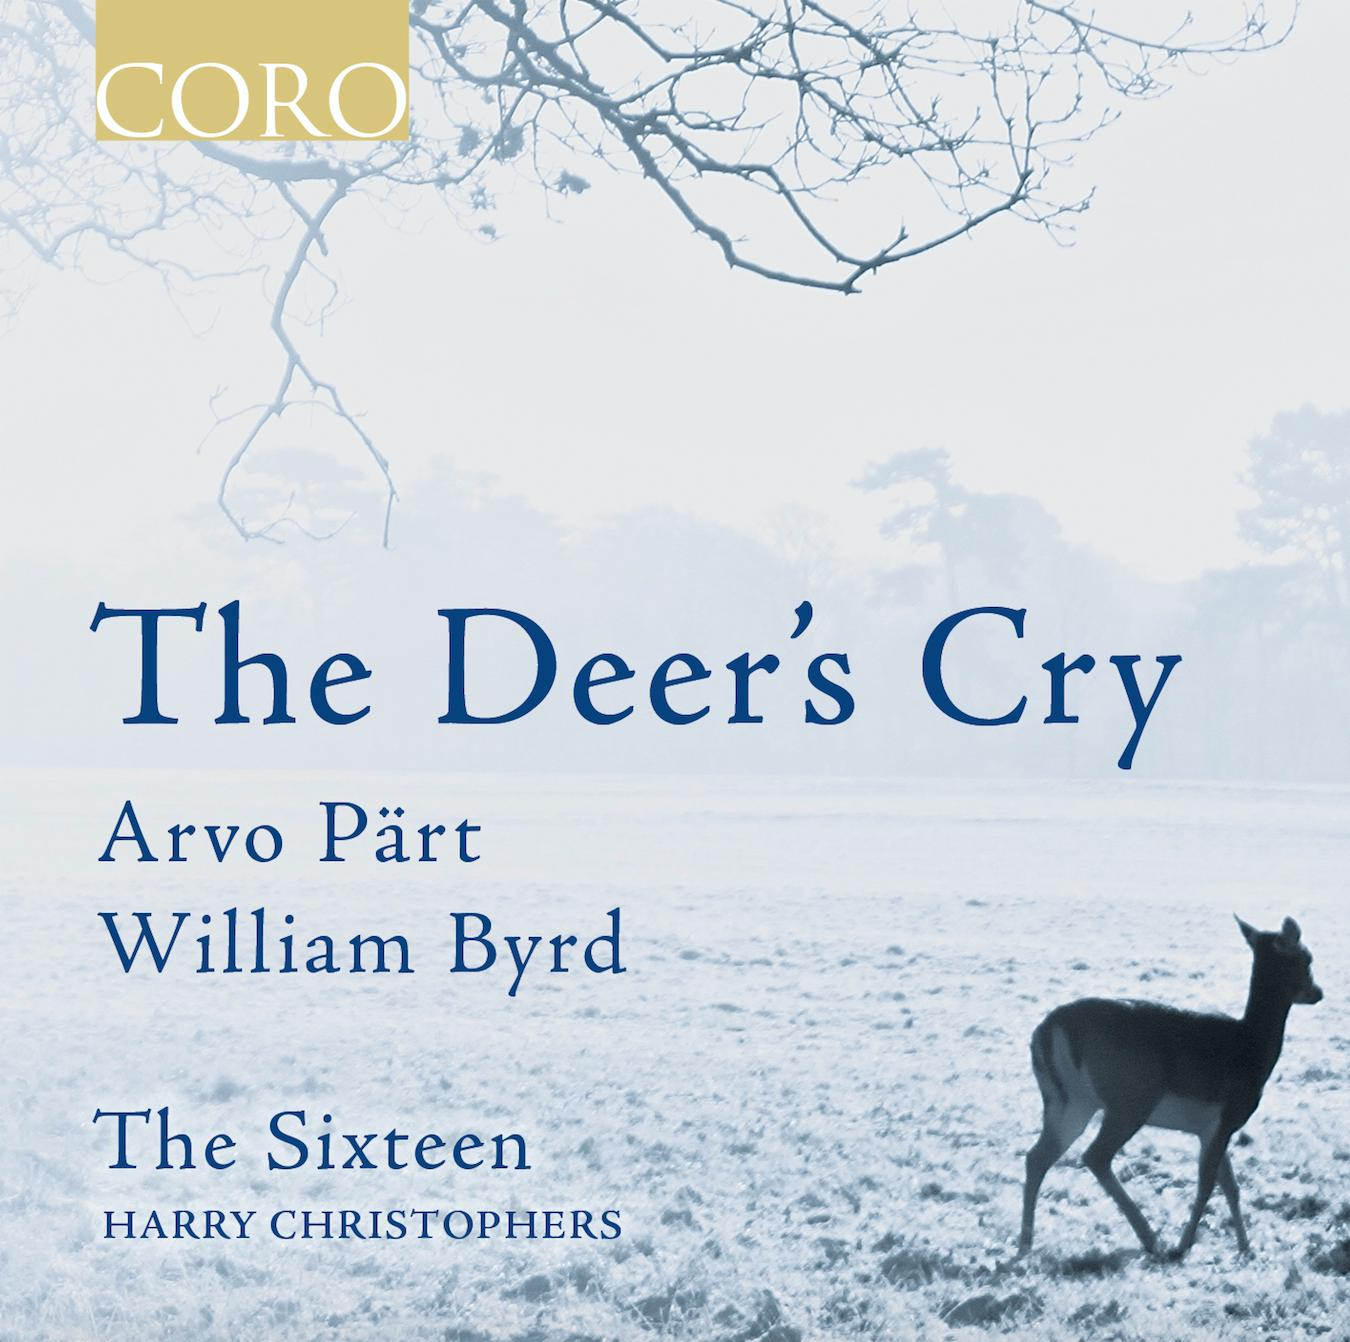 The Deer's Cry  Arvo Part William Byrd The Sixteen